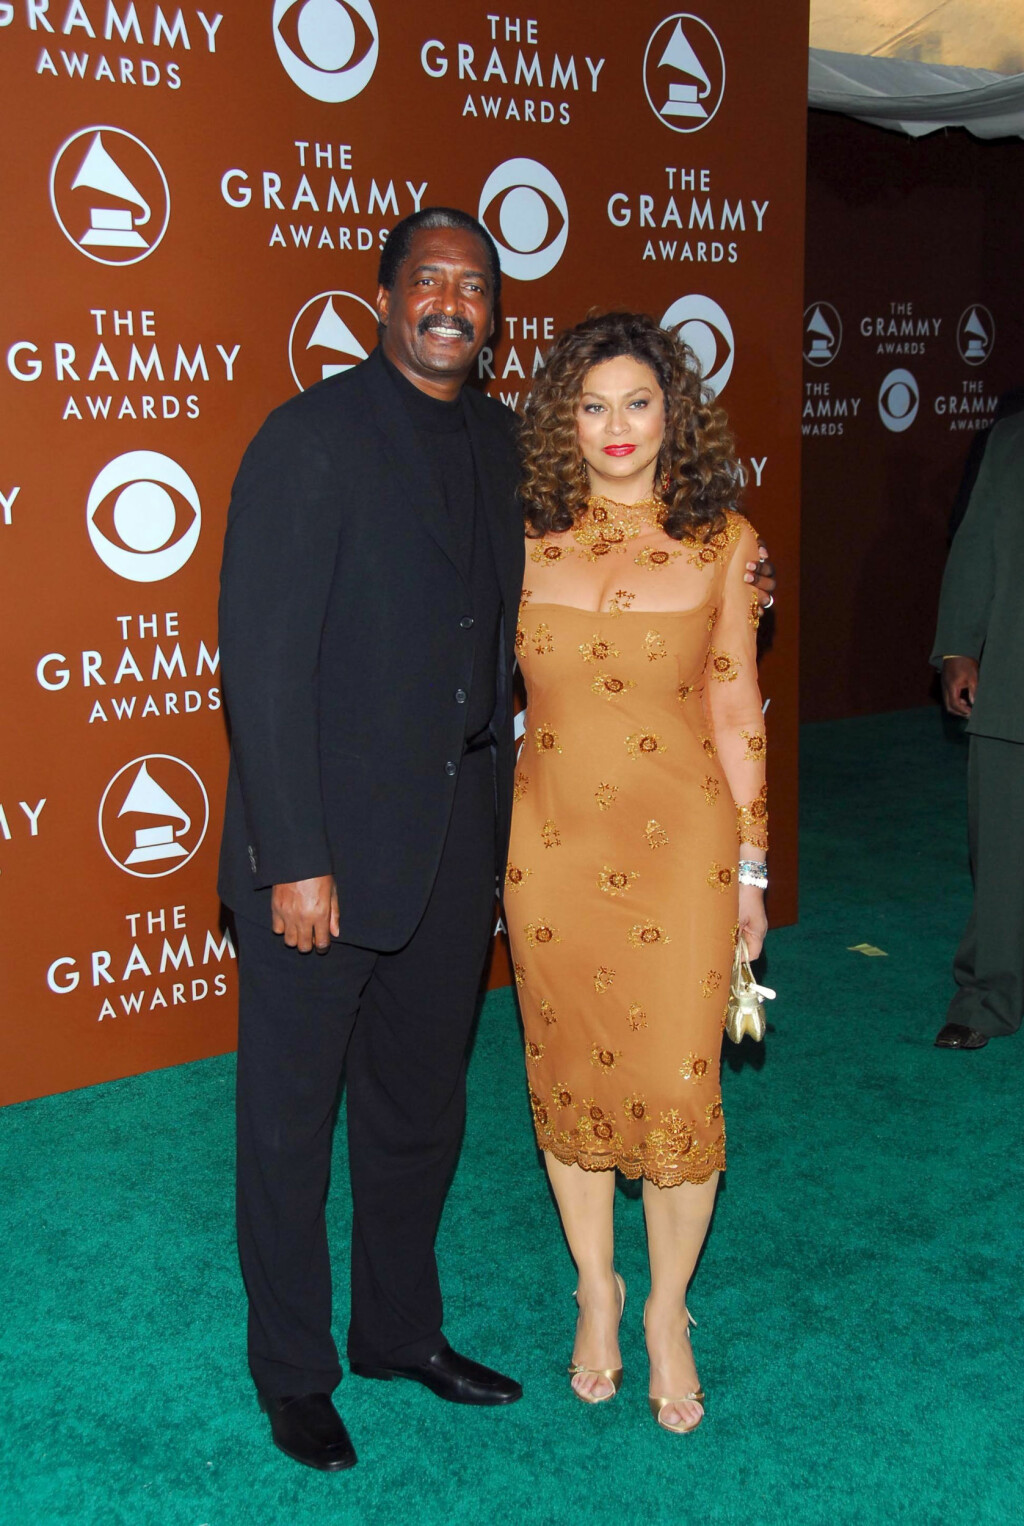 BEYONCES FORELDRE: Mathew Knowles og Tina Knowles avbildet i 2006, fire år før skilsmissen. Foto: REX/Jim Smeal/All Over Press